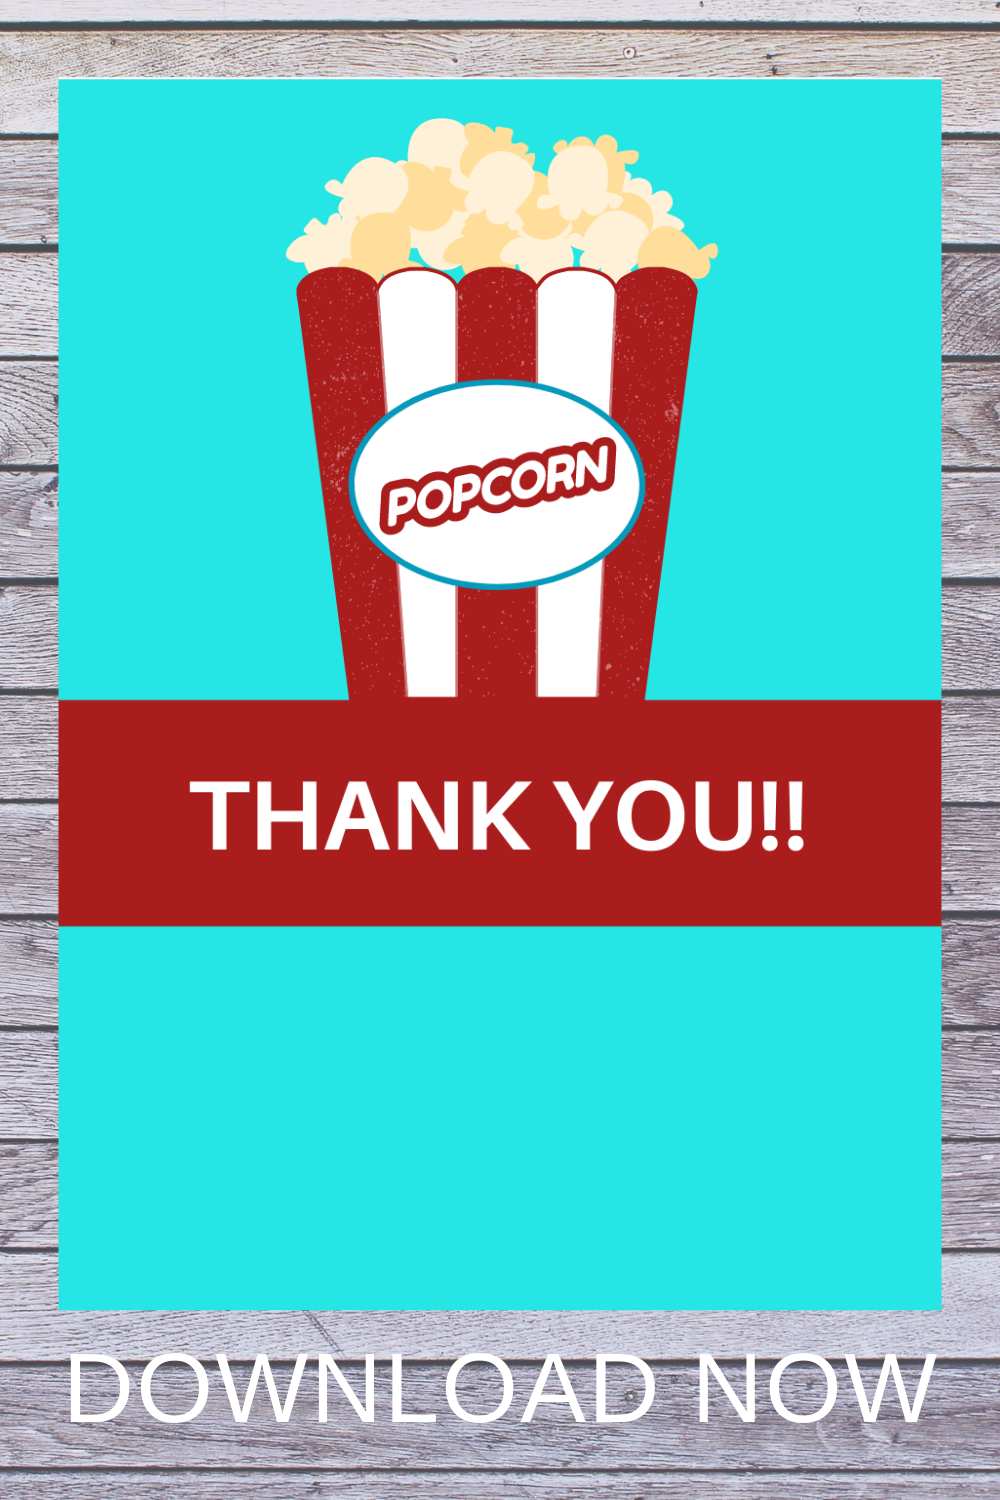 free download: popcorn thank you card for a carnival birthday party